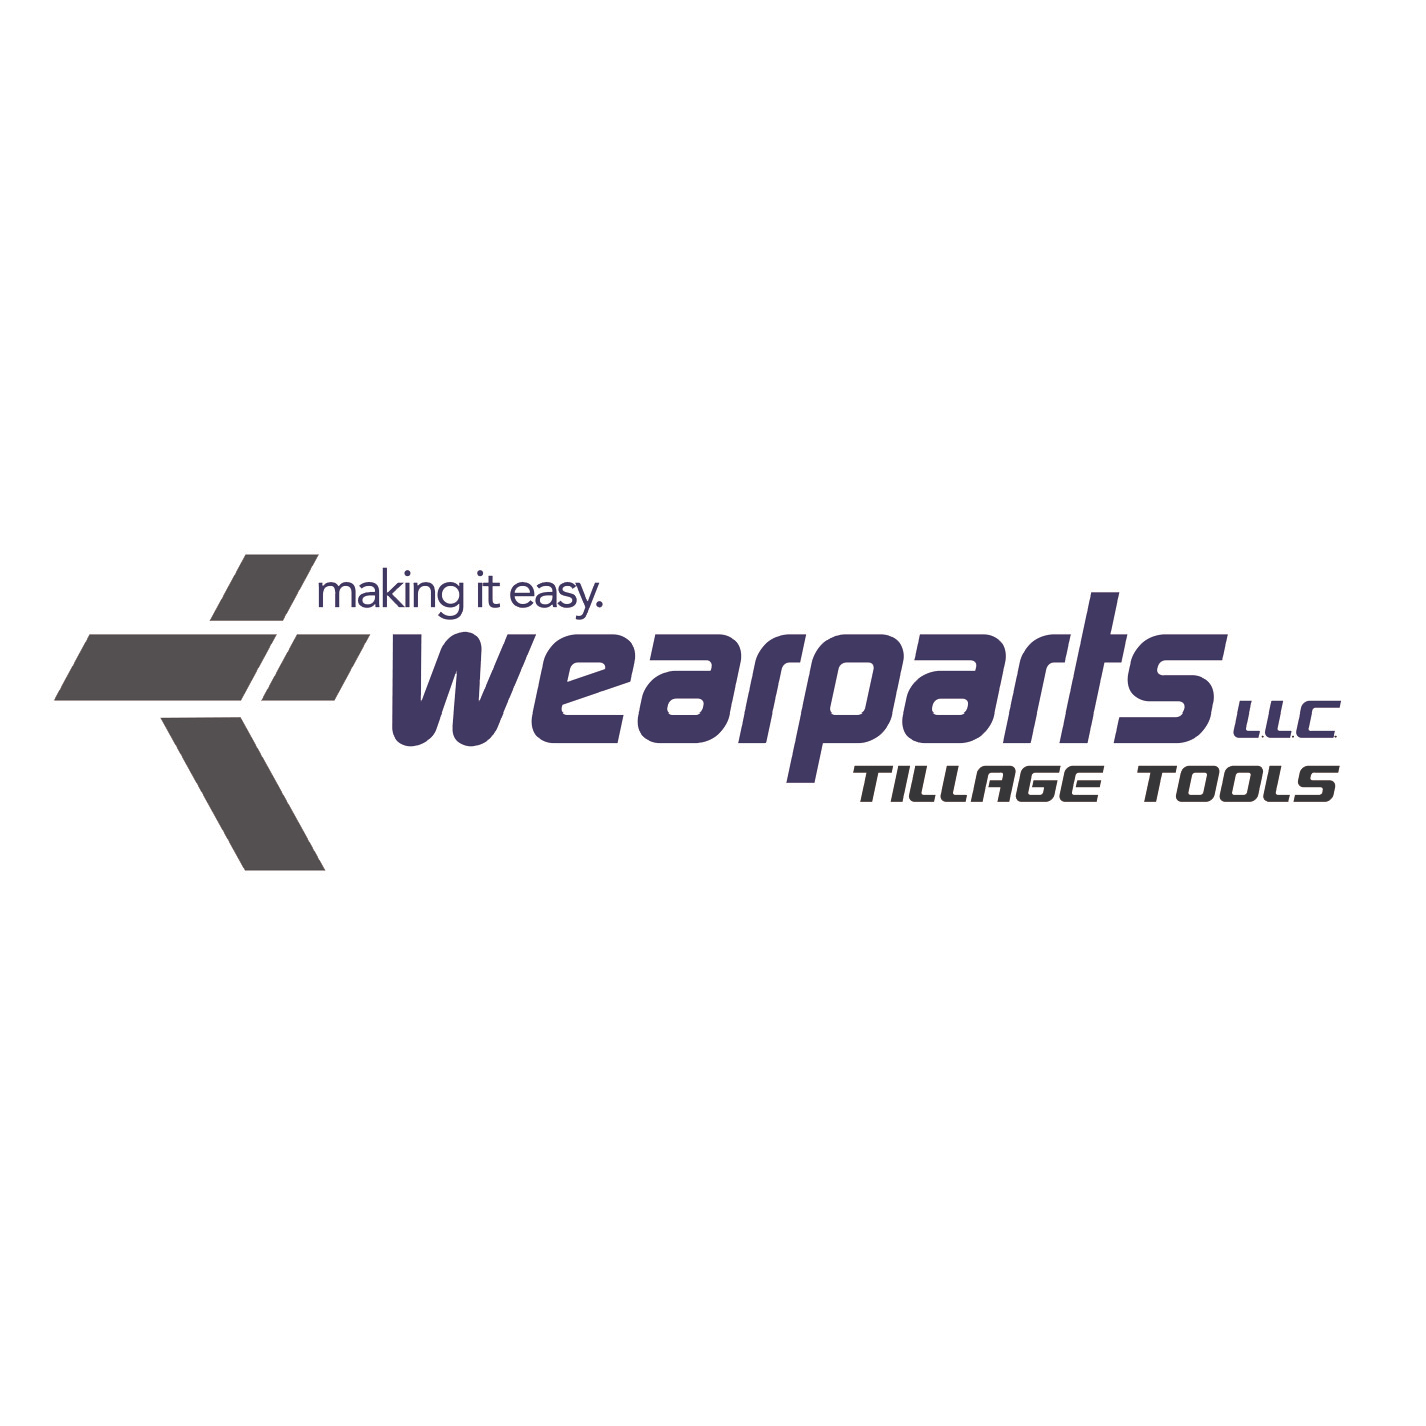 Wearparts LLC